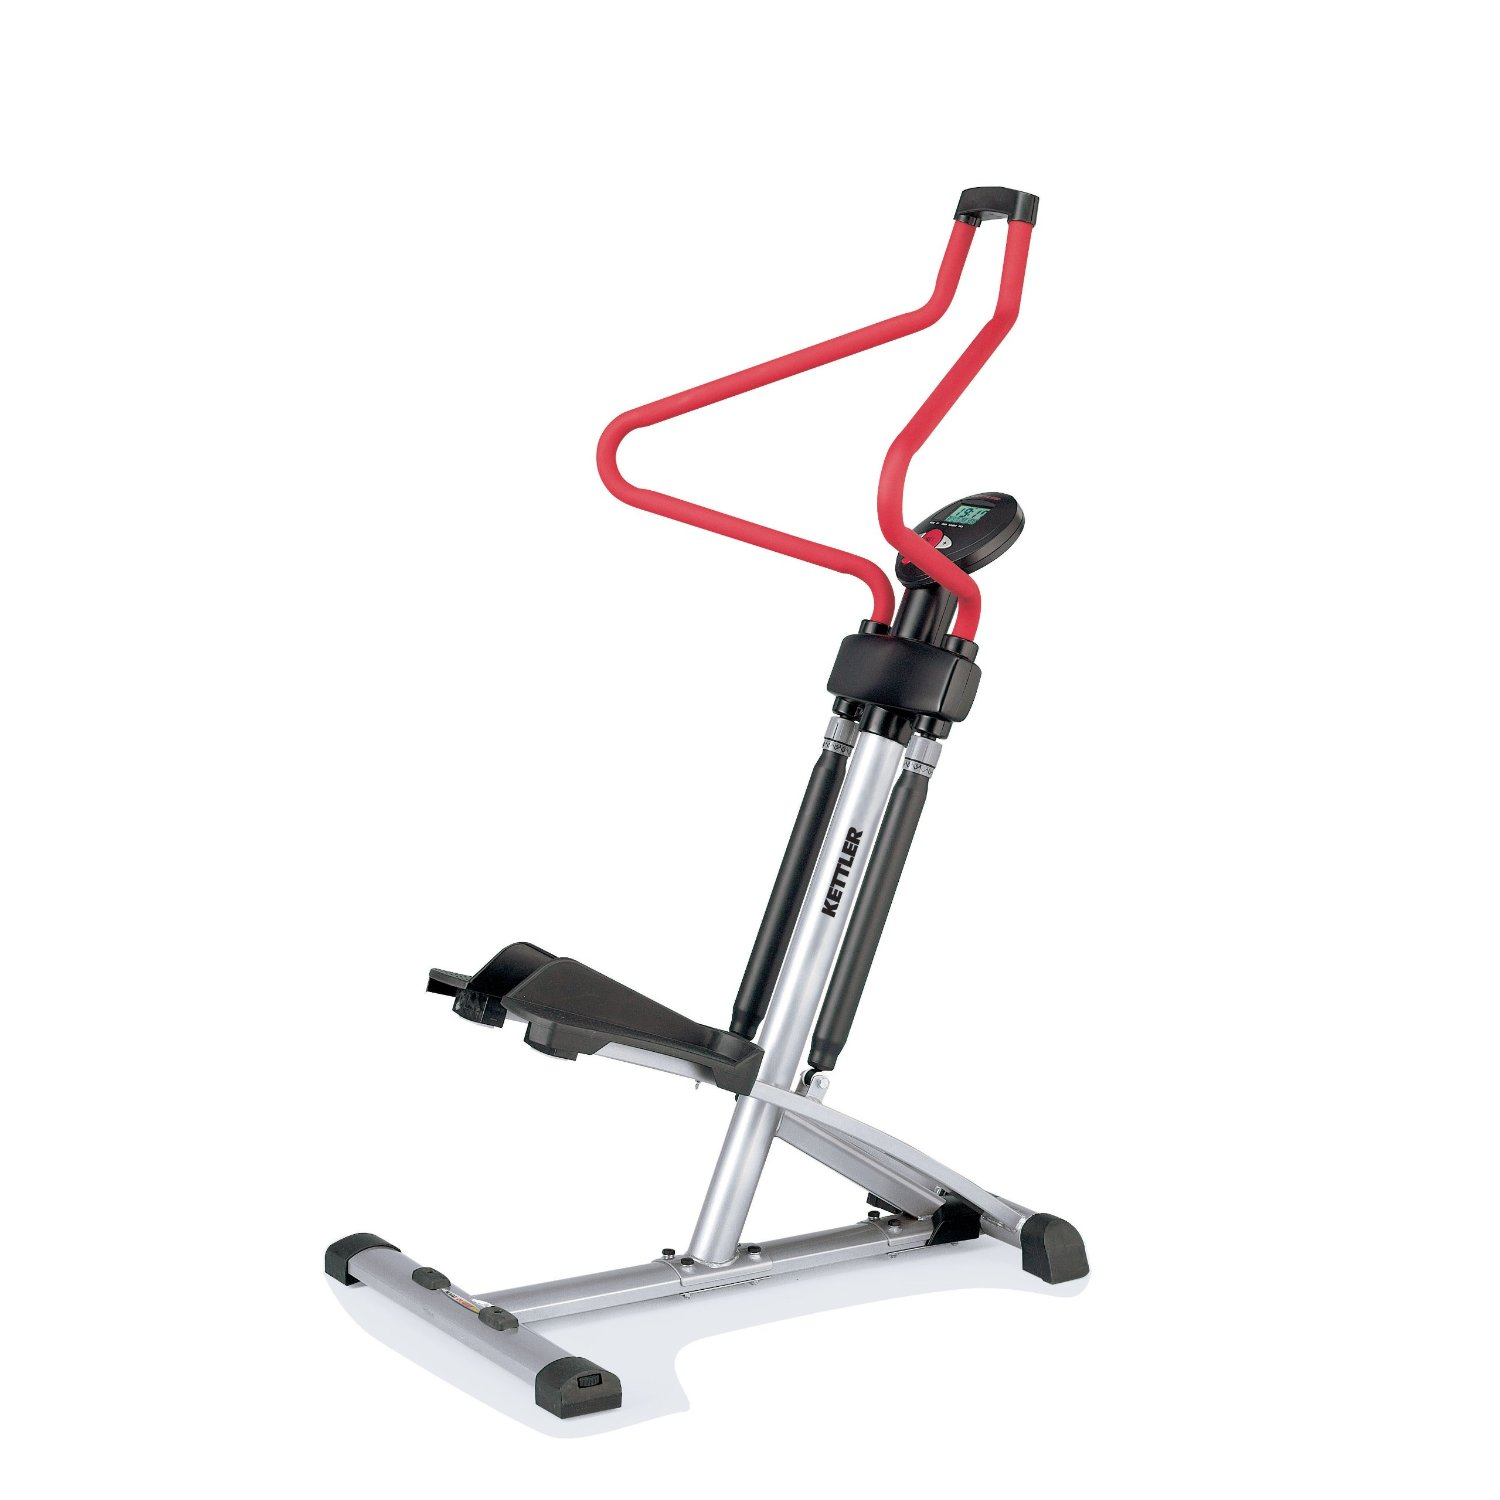 Kettler Fitness Kettler Montana Stepper Review